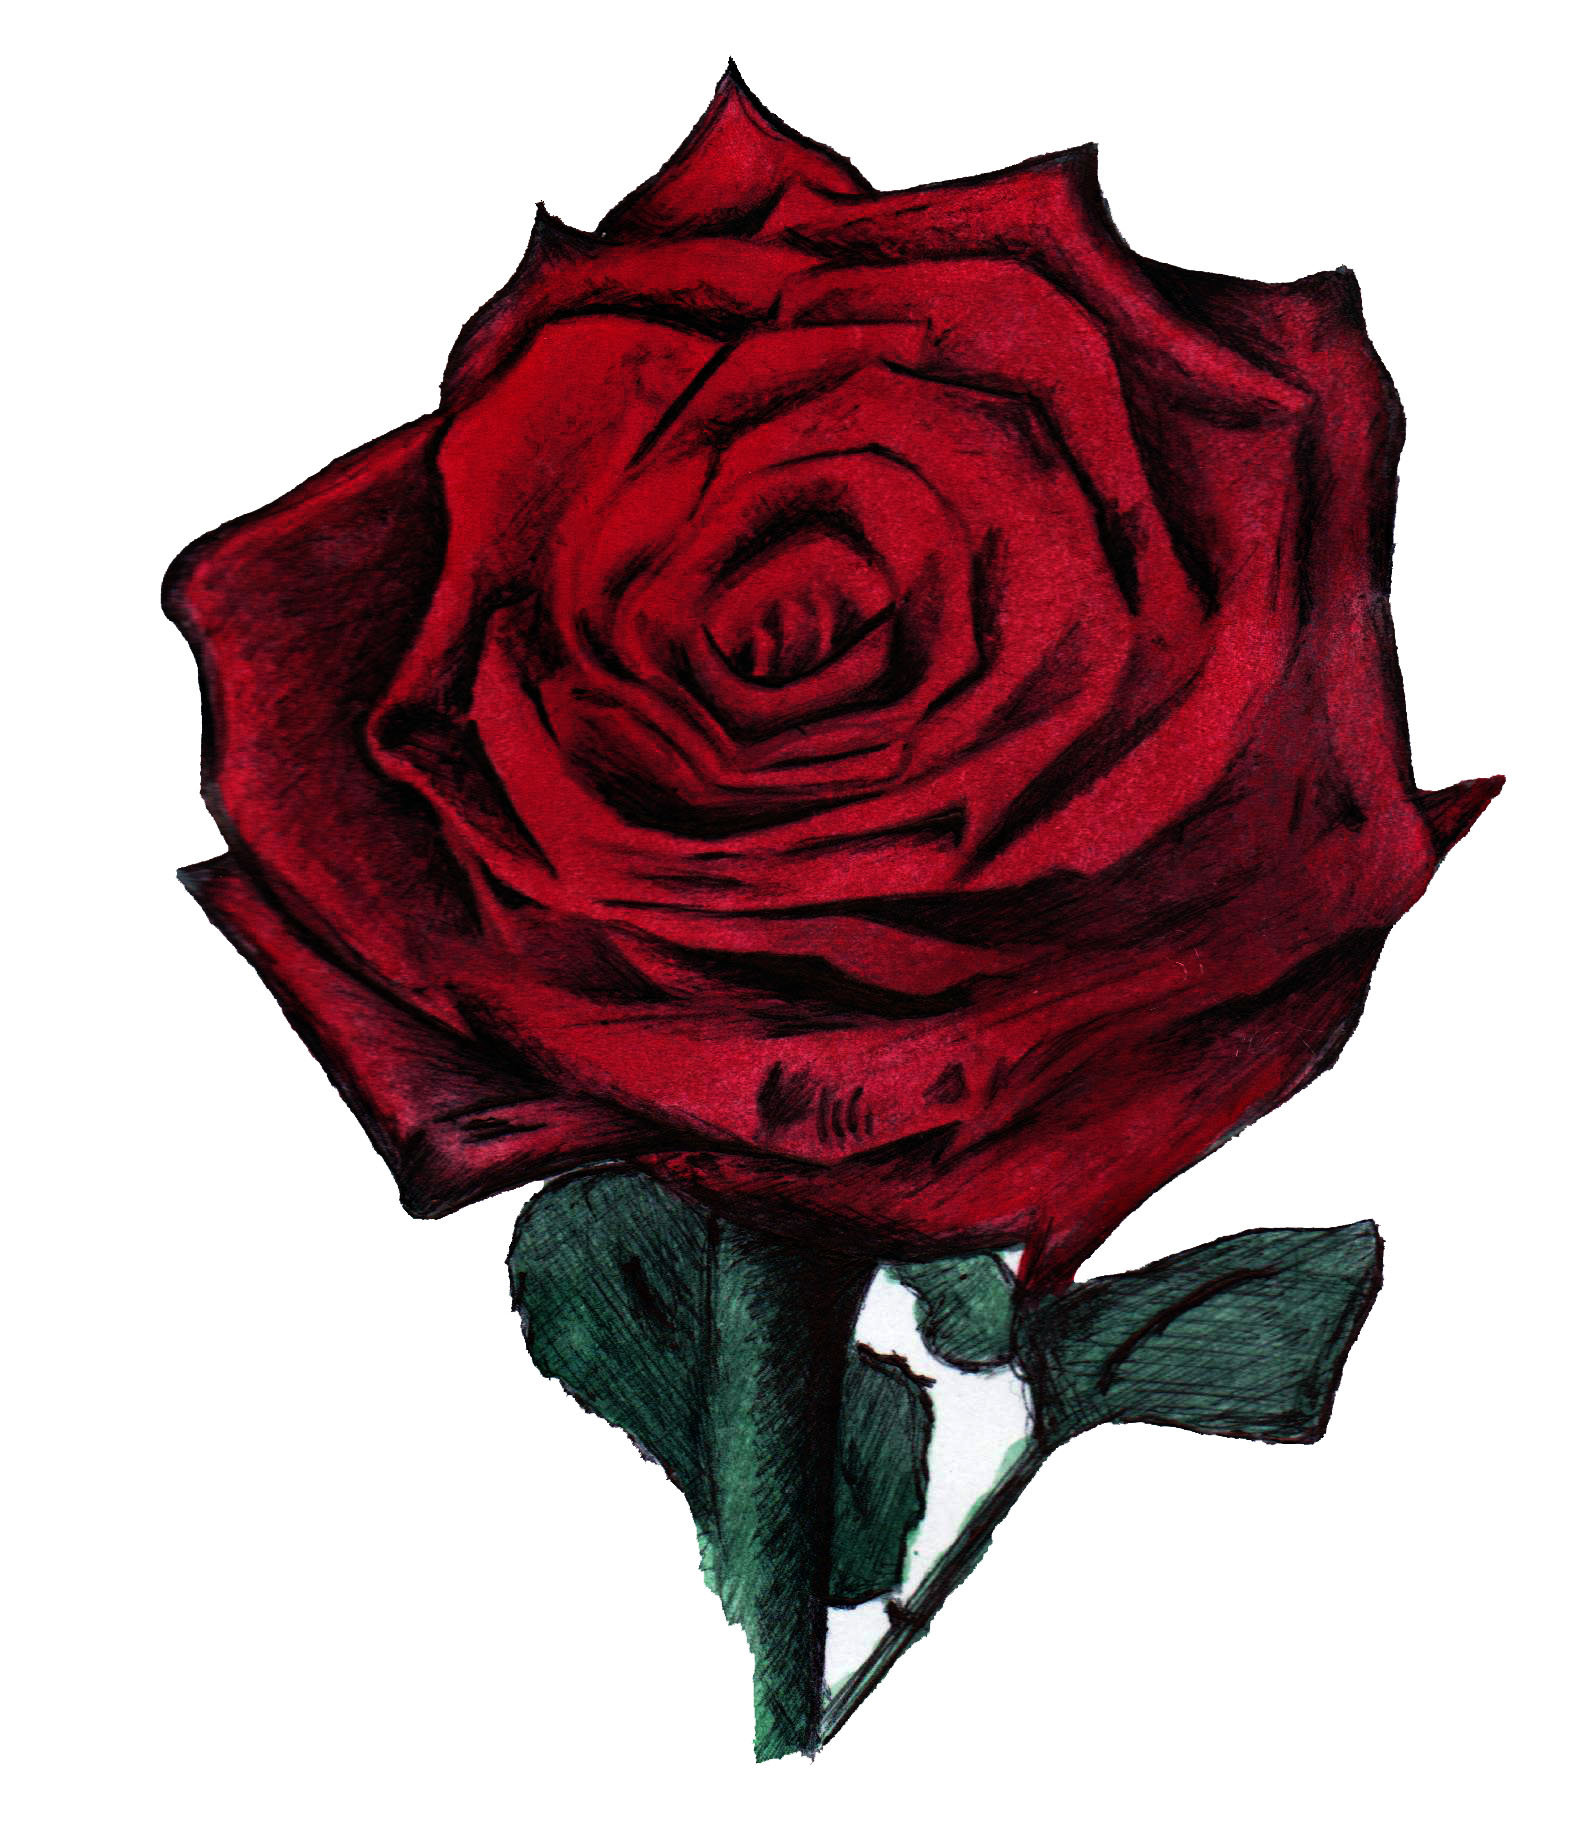 Drawn red rose biro Rose water to online and